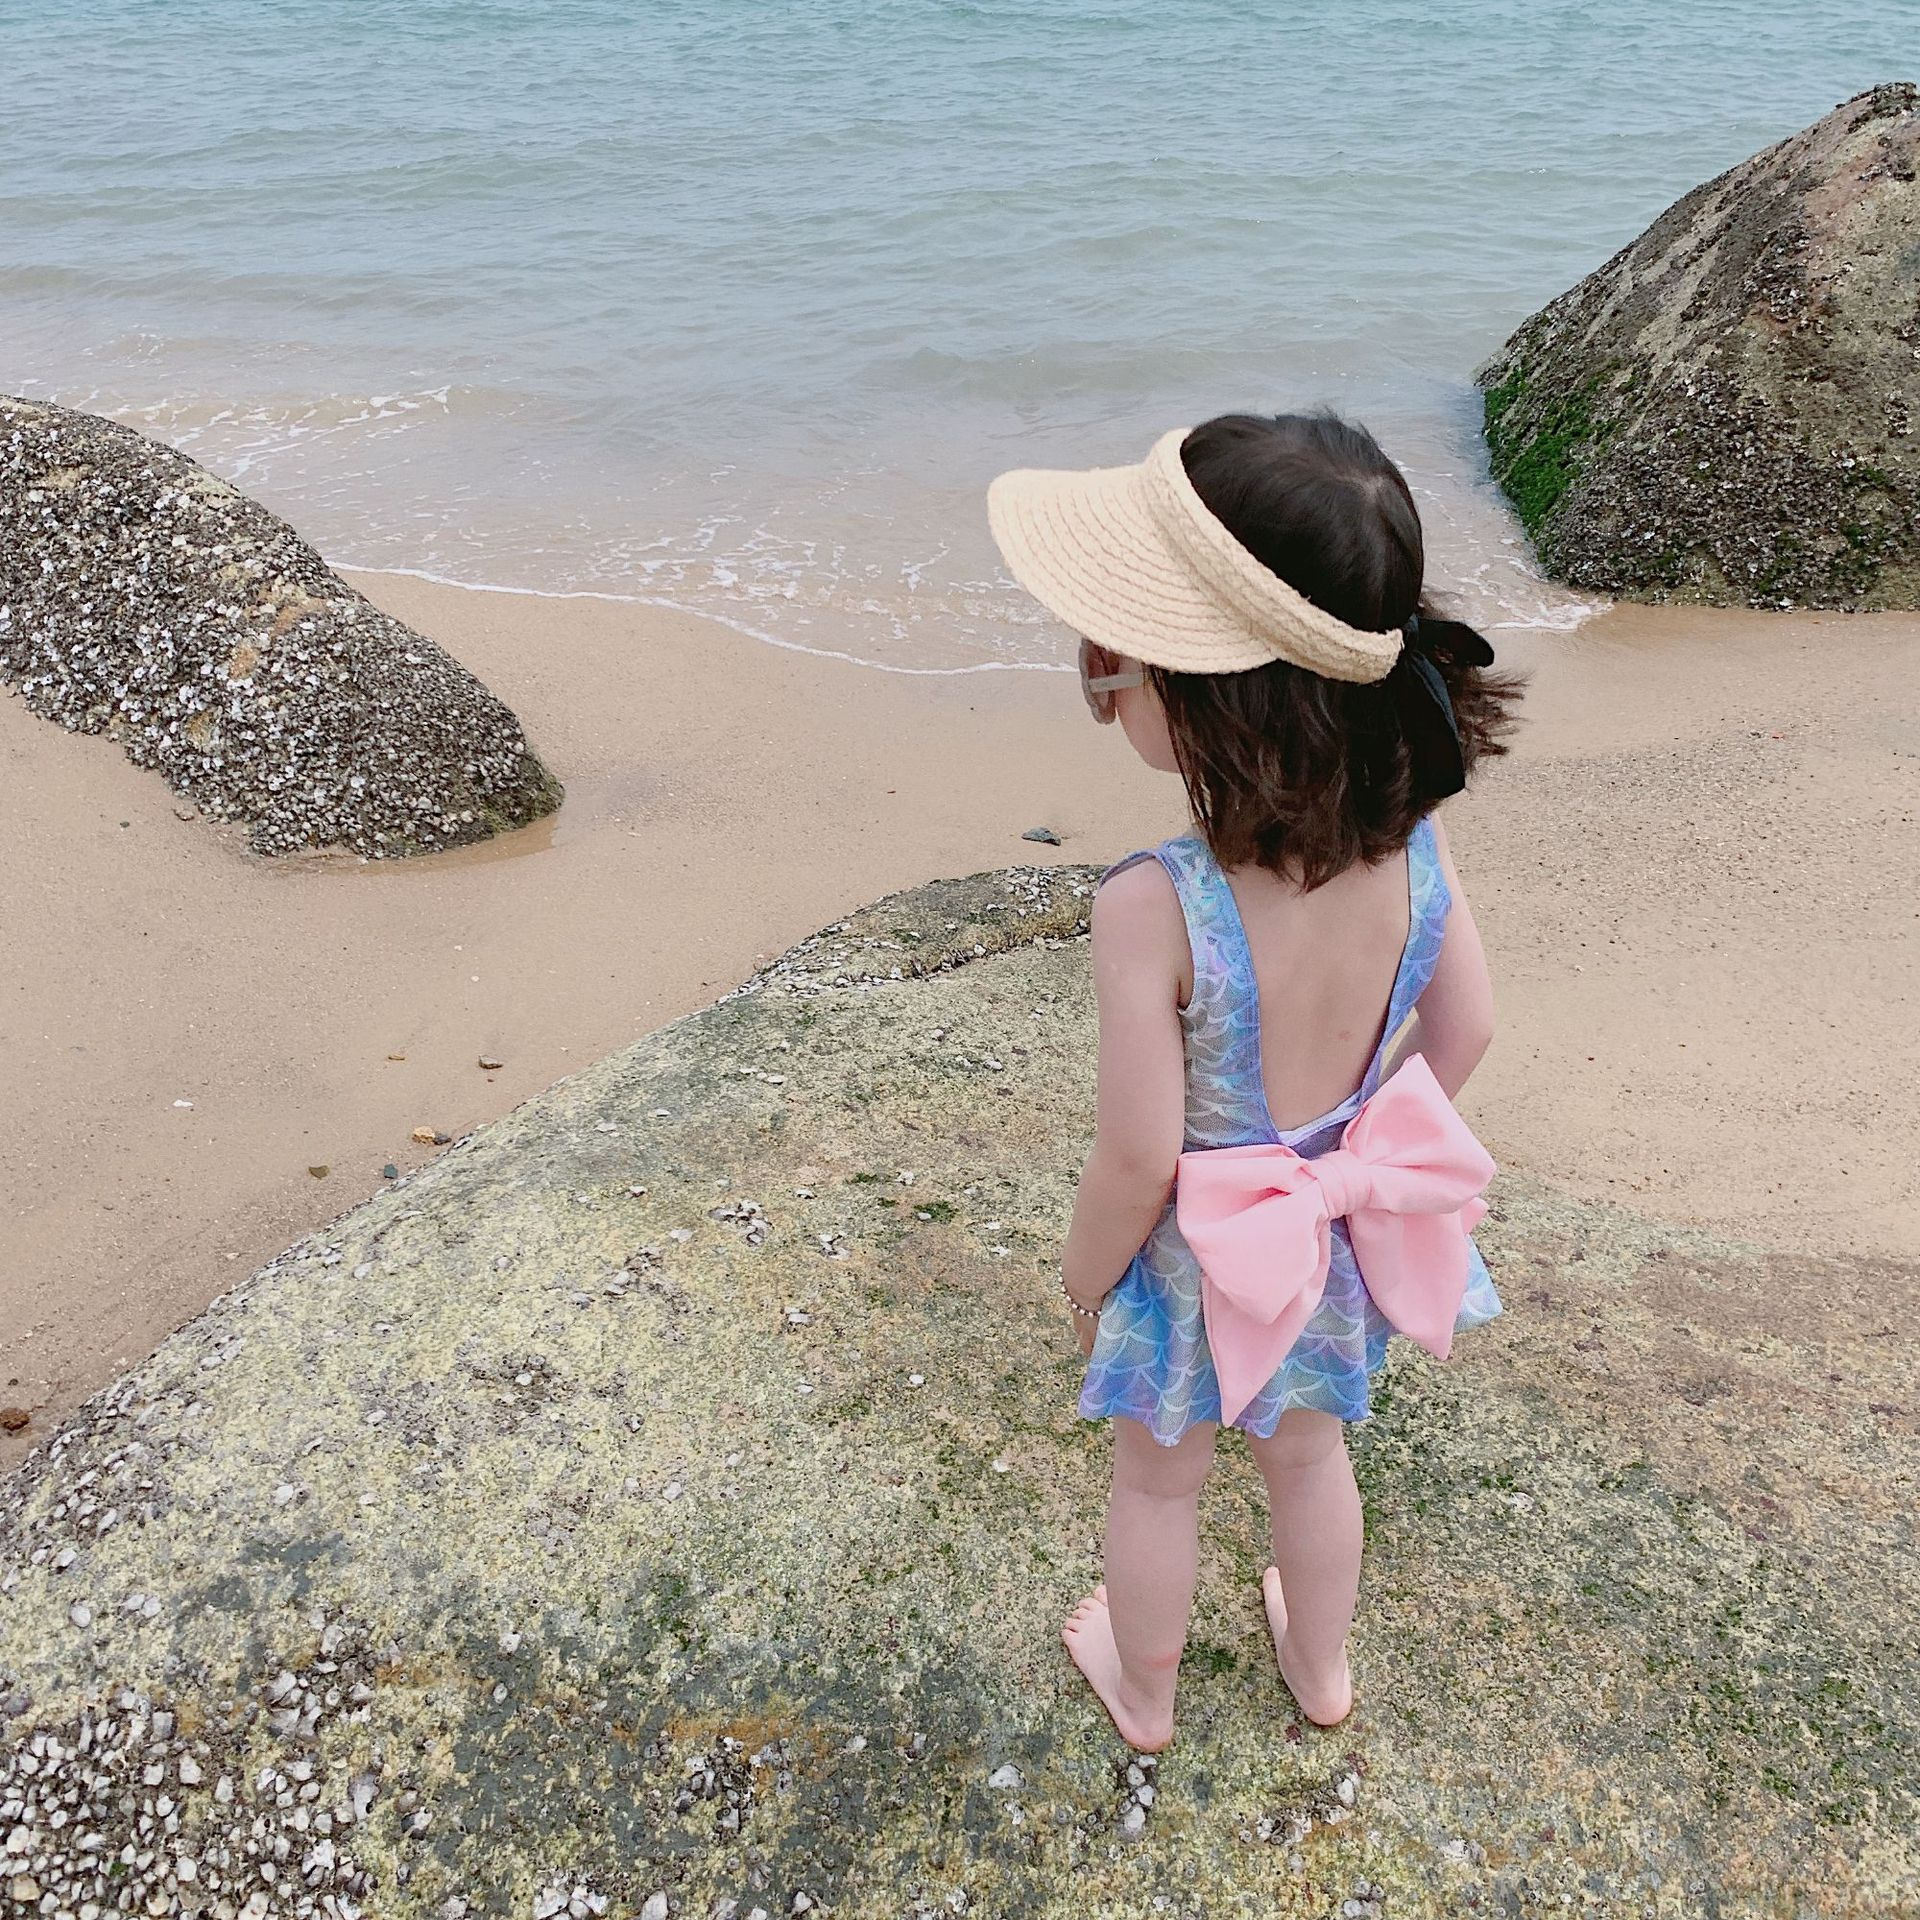 Mermaid Swimsuit Children Mermaid Tail One-piece Swimming Suit Mermaid Butterfly Bowknot With Skirt GIRL'S Swimsuit